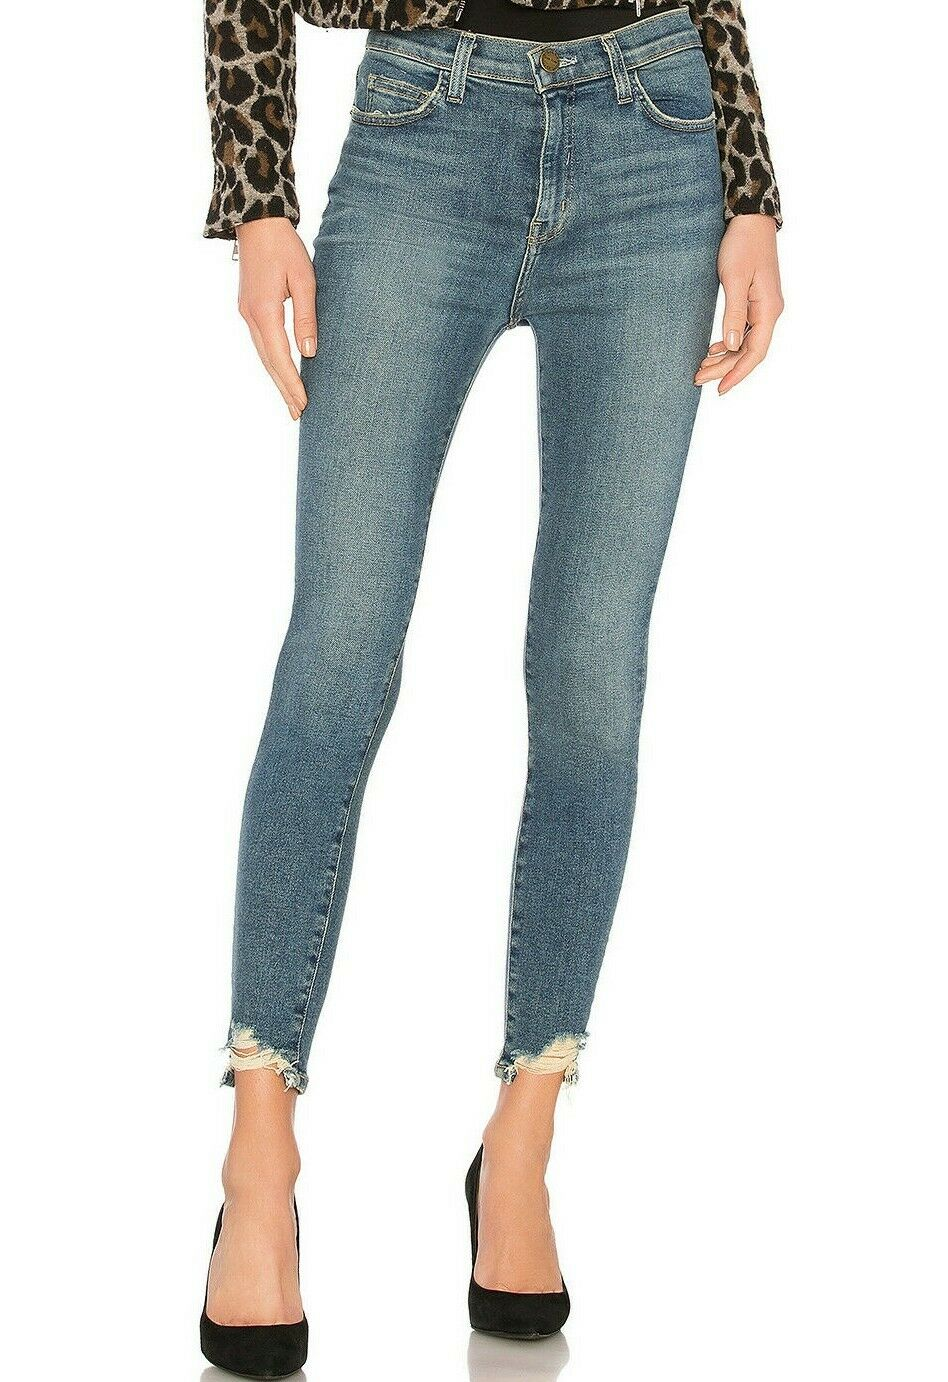 NWT CURRENT ELLIOTT Sz29 THE SUPER HI-WAIST STILETTO STRETCH JEANS HARVEY D